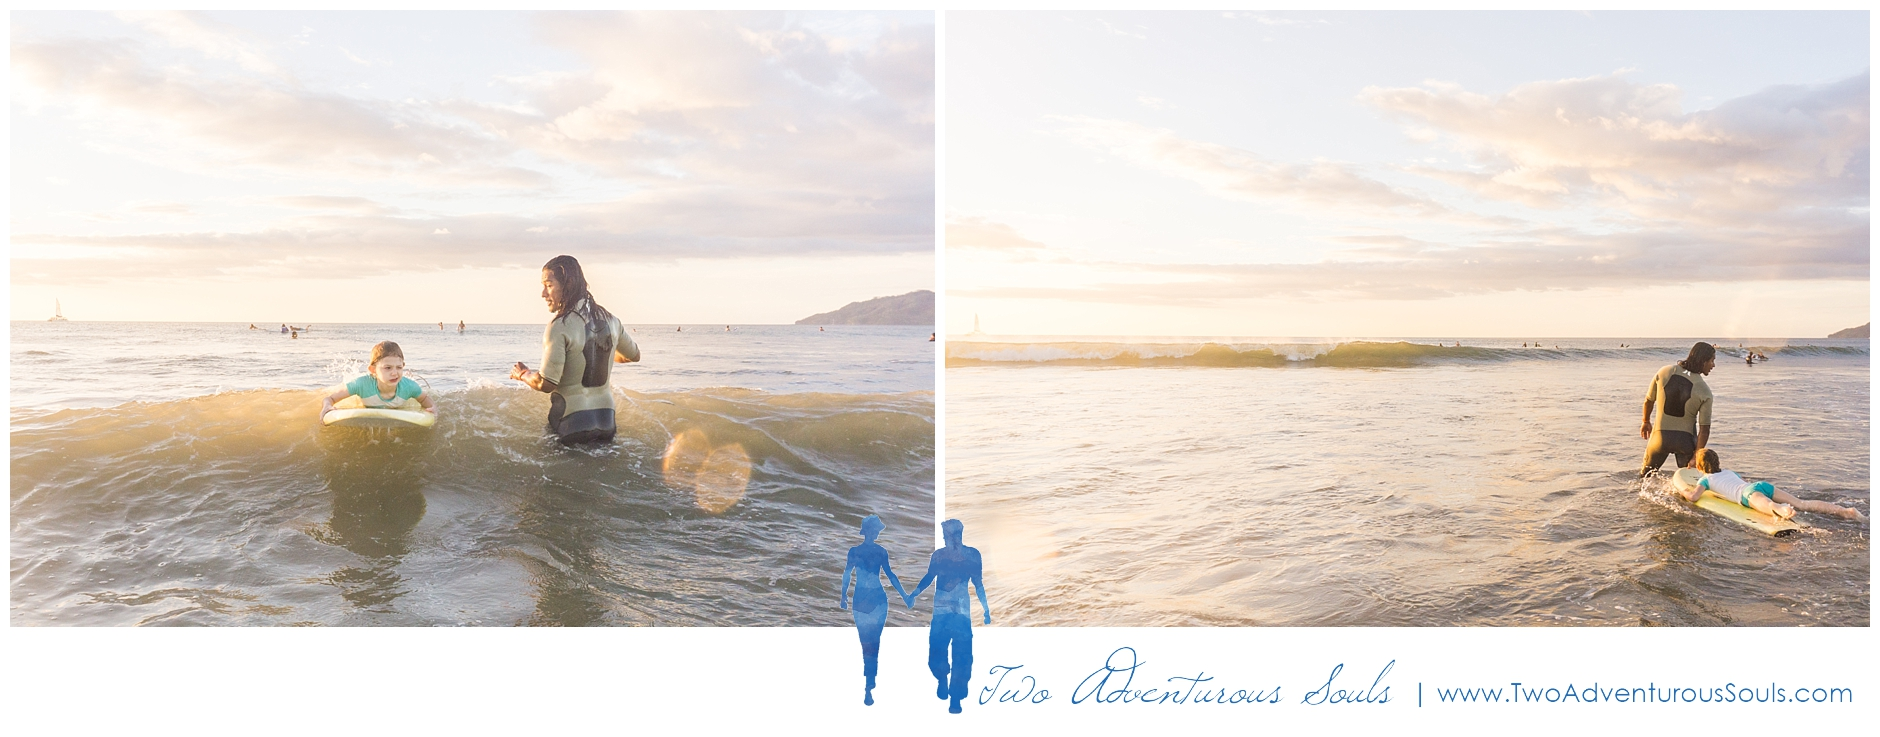 Costa Rica Wedding Photographers on Vacation in Tamarindo Costa Rica - Surf Lessons in Costa Rica